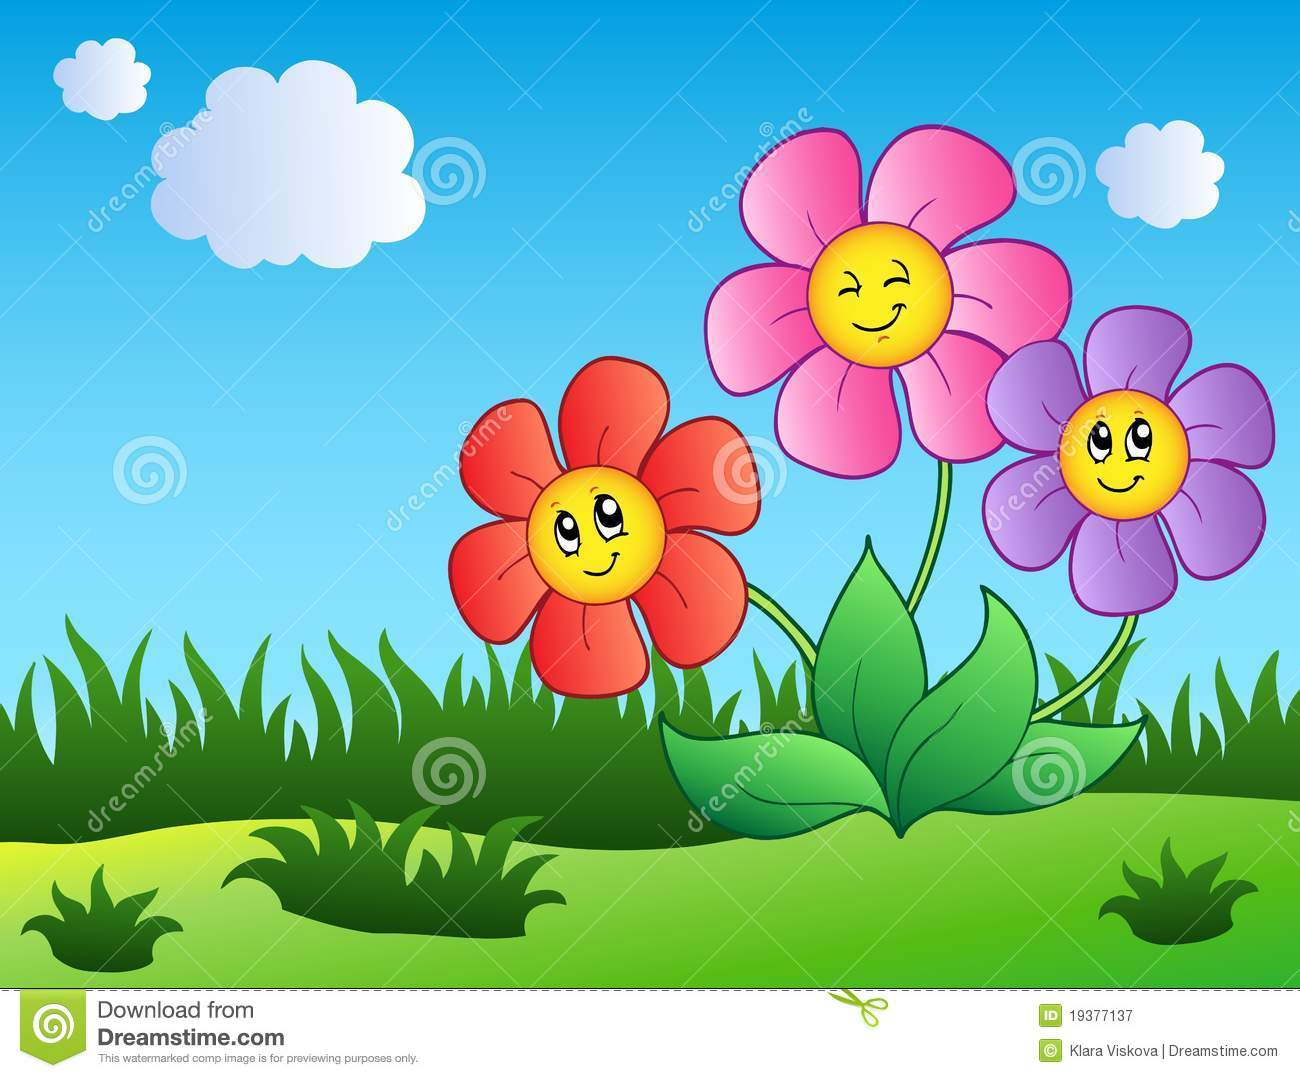 smiling flowers stock illustrations 11 885 smiling flowers stock illustrations vectors clipart dreamstime dreamstime com